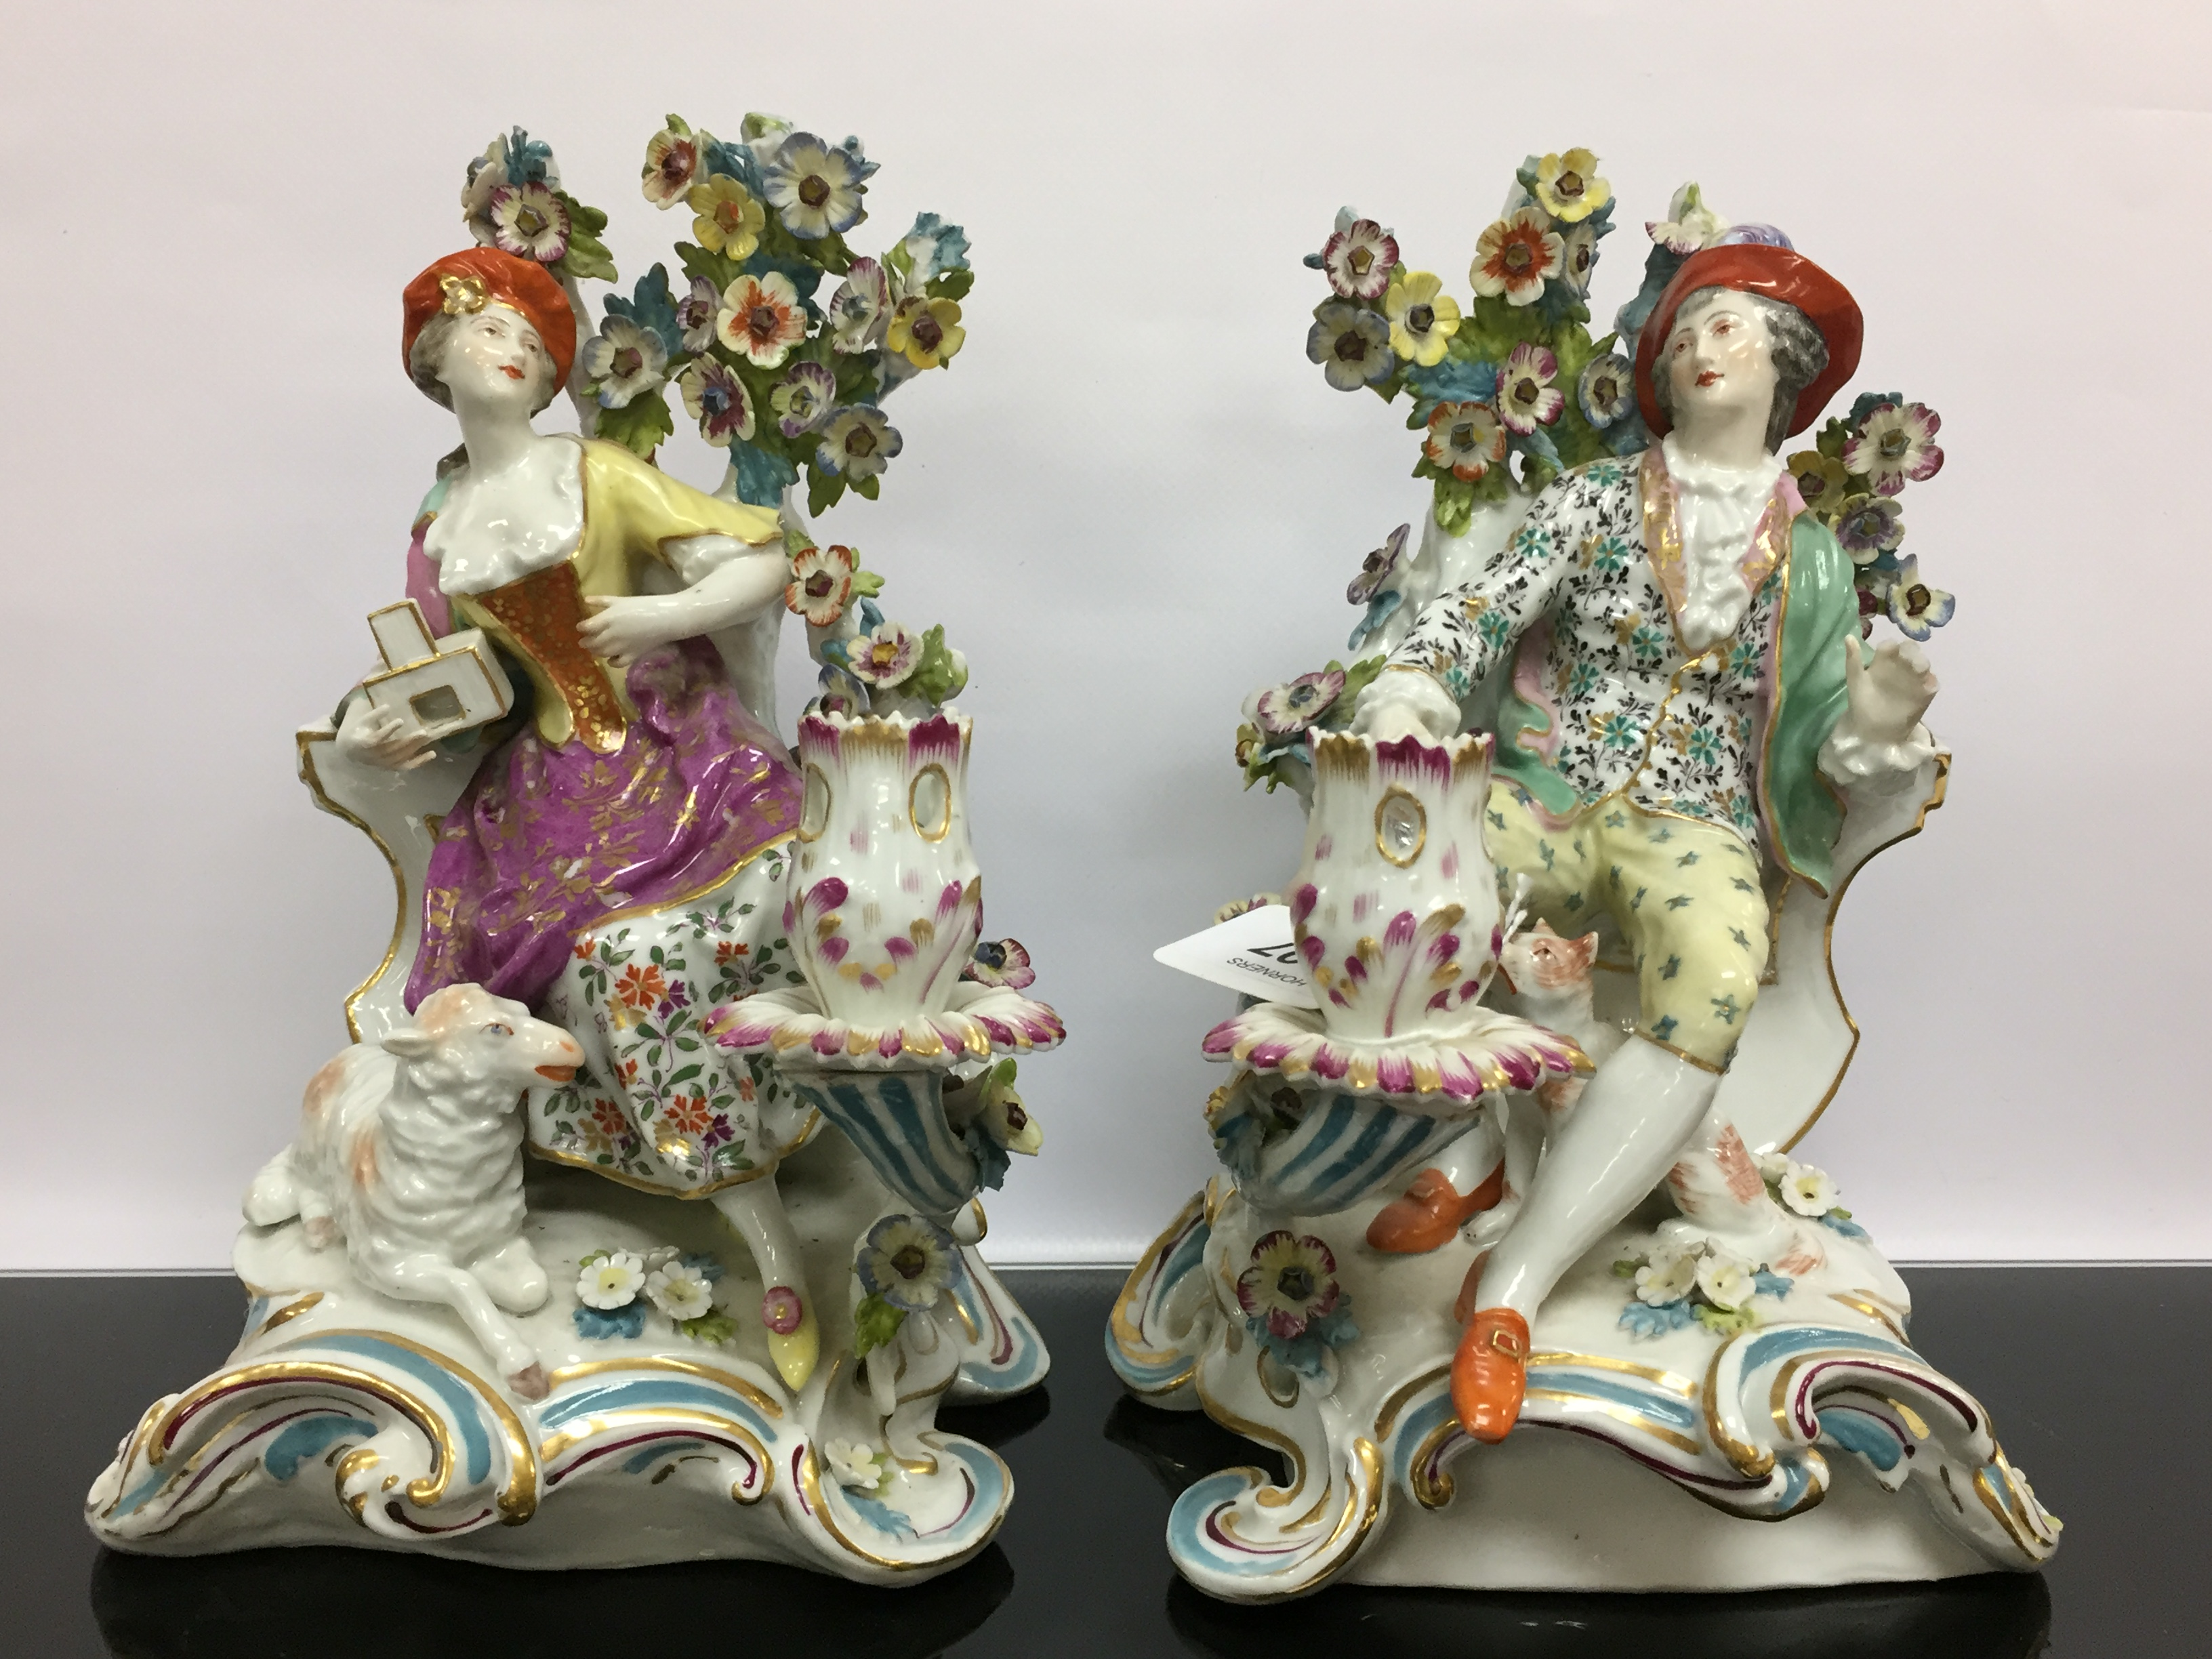 Lot 107 - A PAIR OF C19TH FRENCH SAMSON (COPYING CHELSEA) CANDLE FIGURE GROUPS,